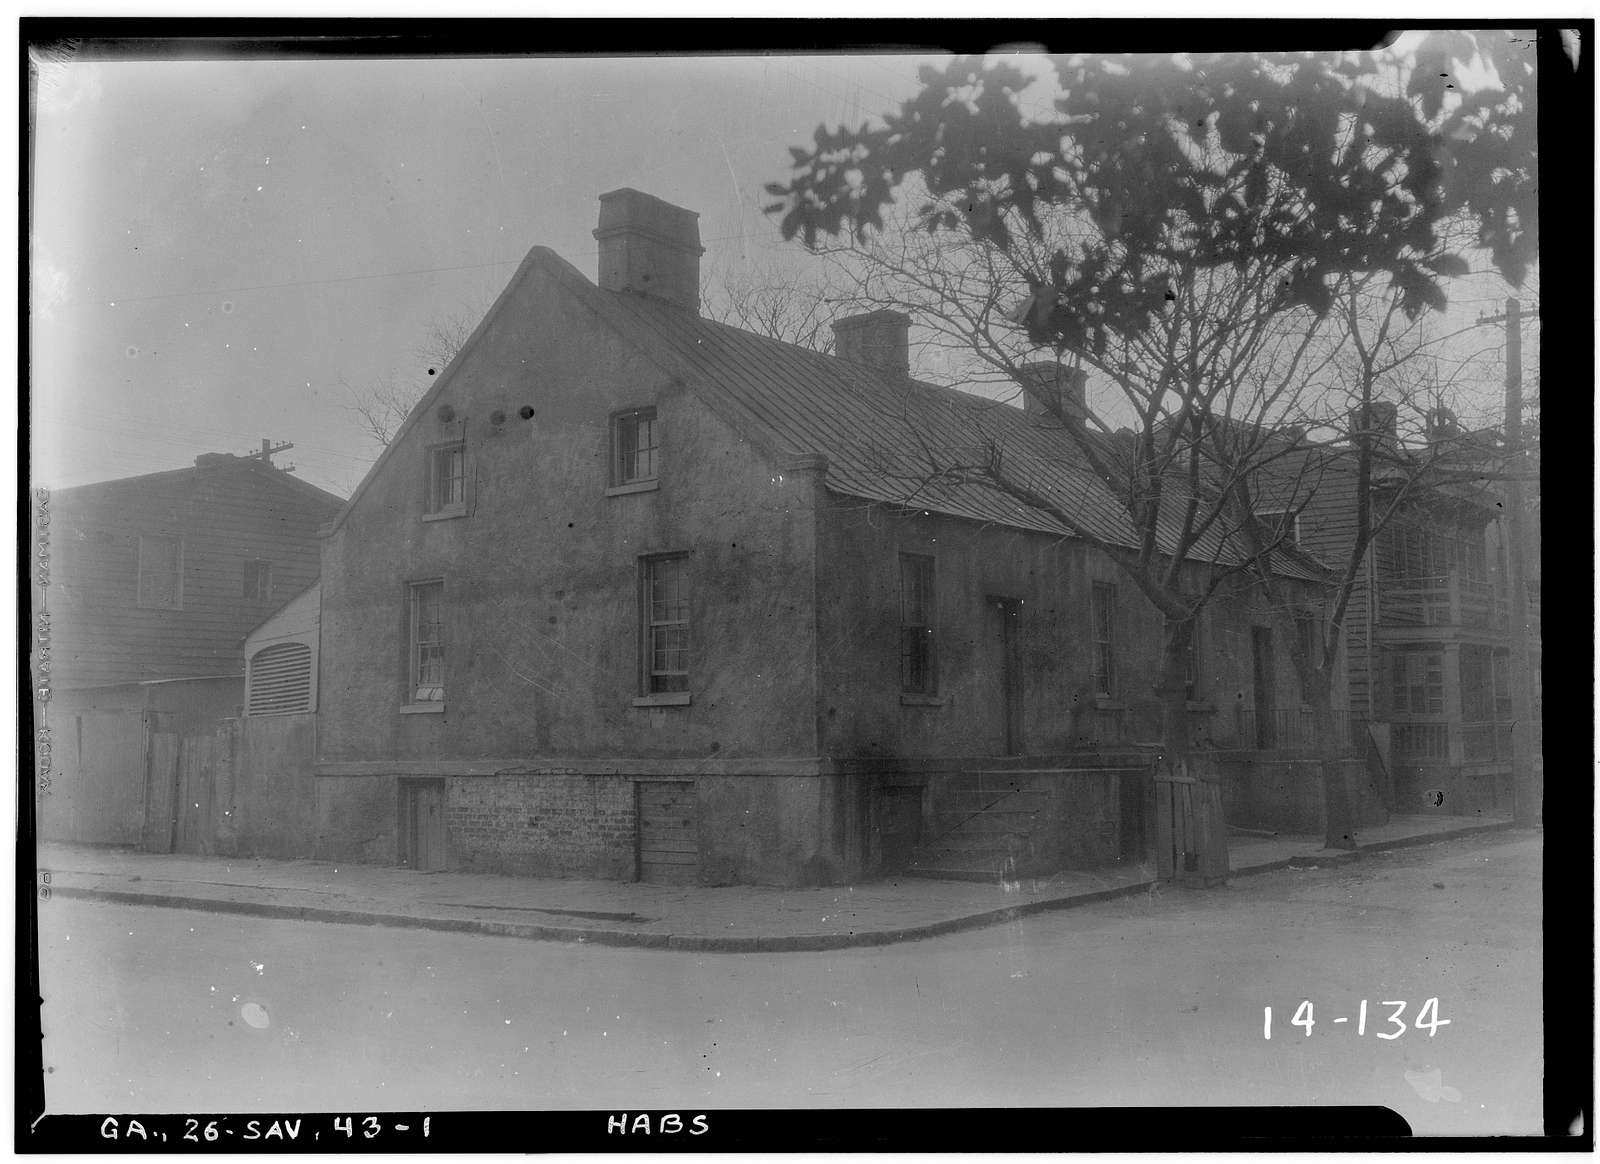 Tenement Houses, 421-423 East York Street, Savannah, Chatham County, GA